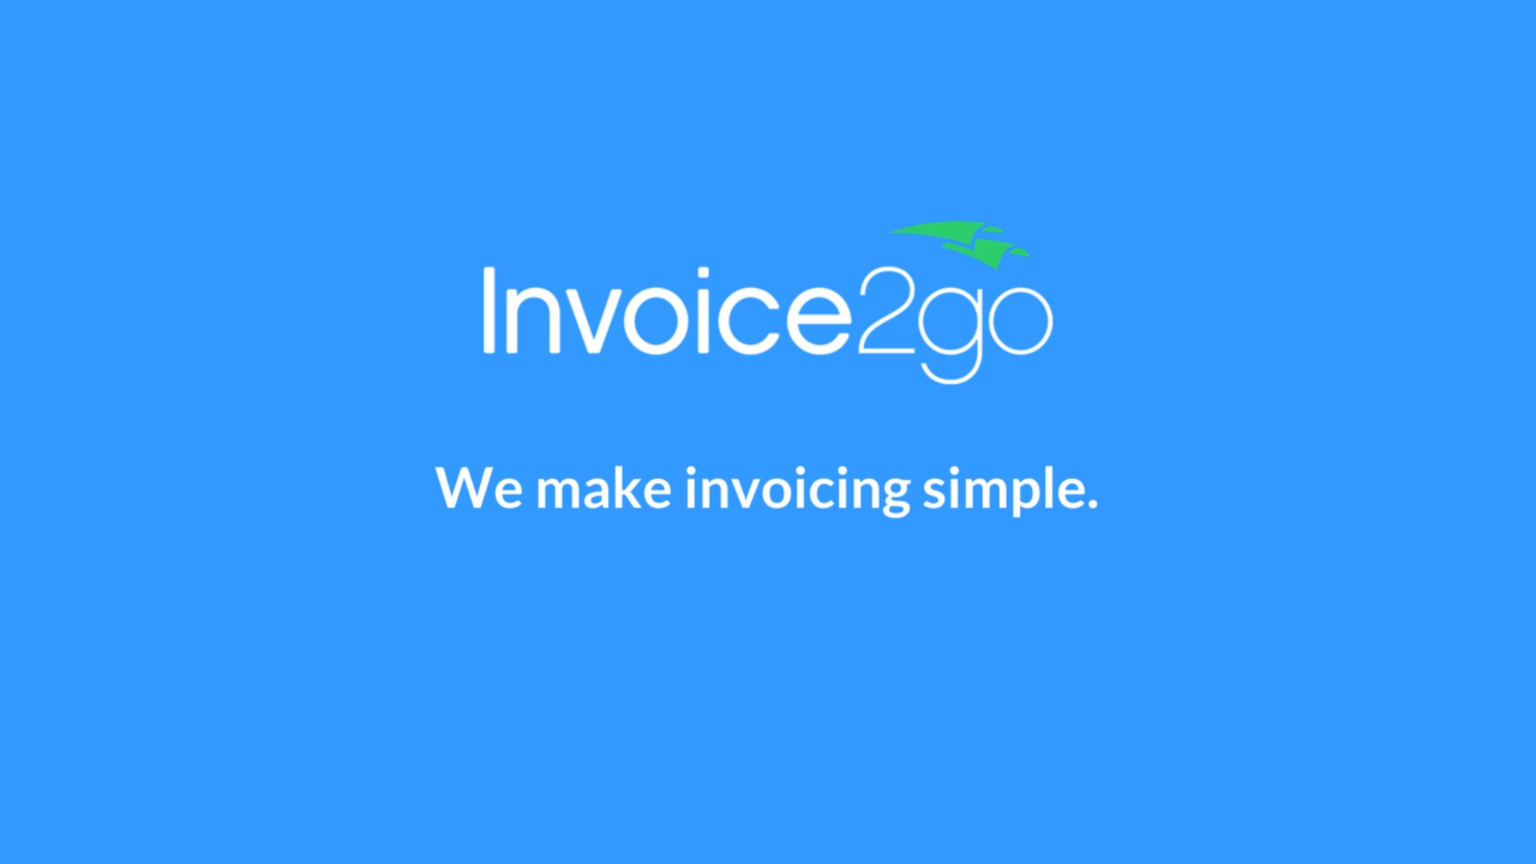 custom invoices and fast payment try invoice2go free today